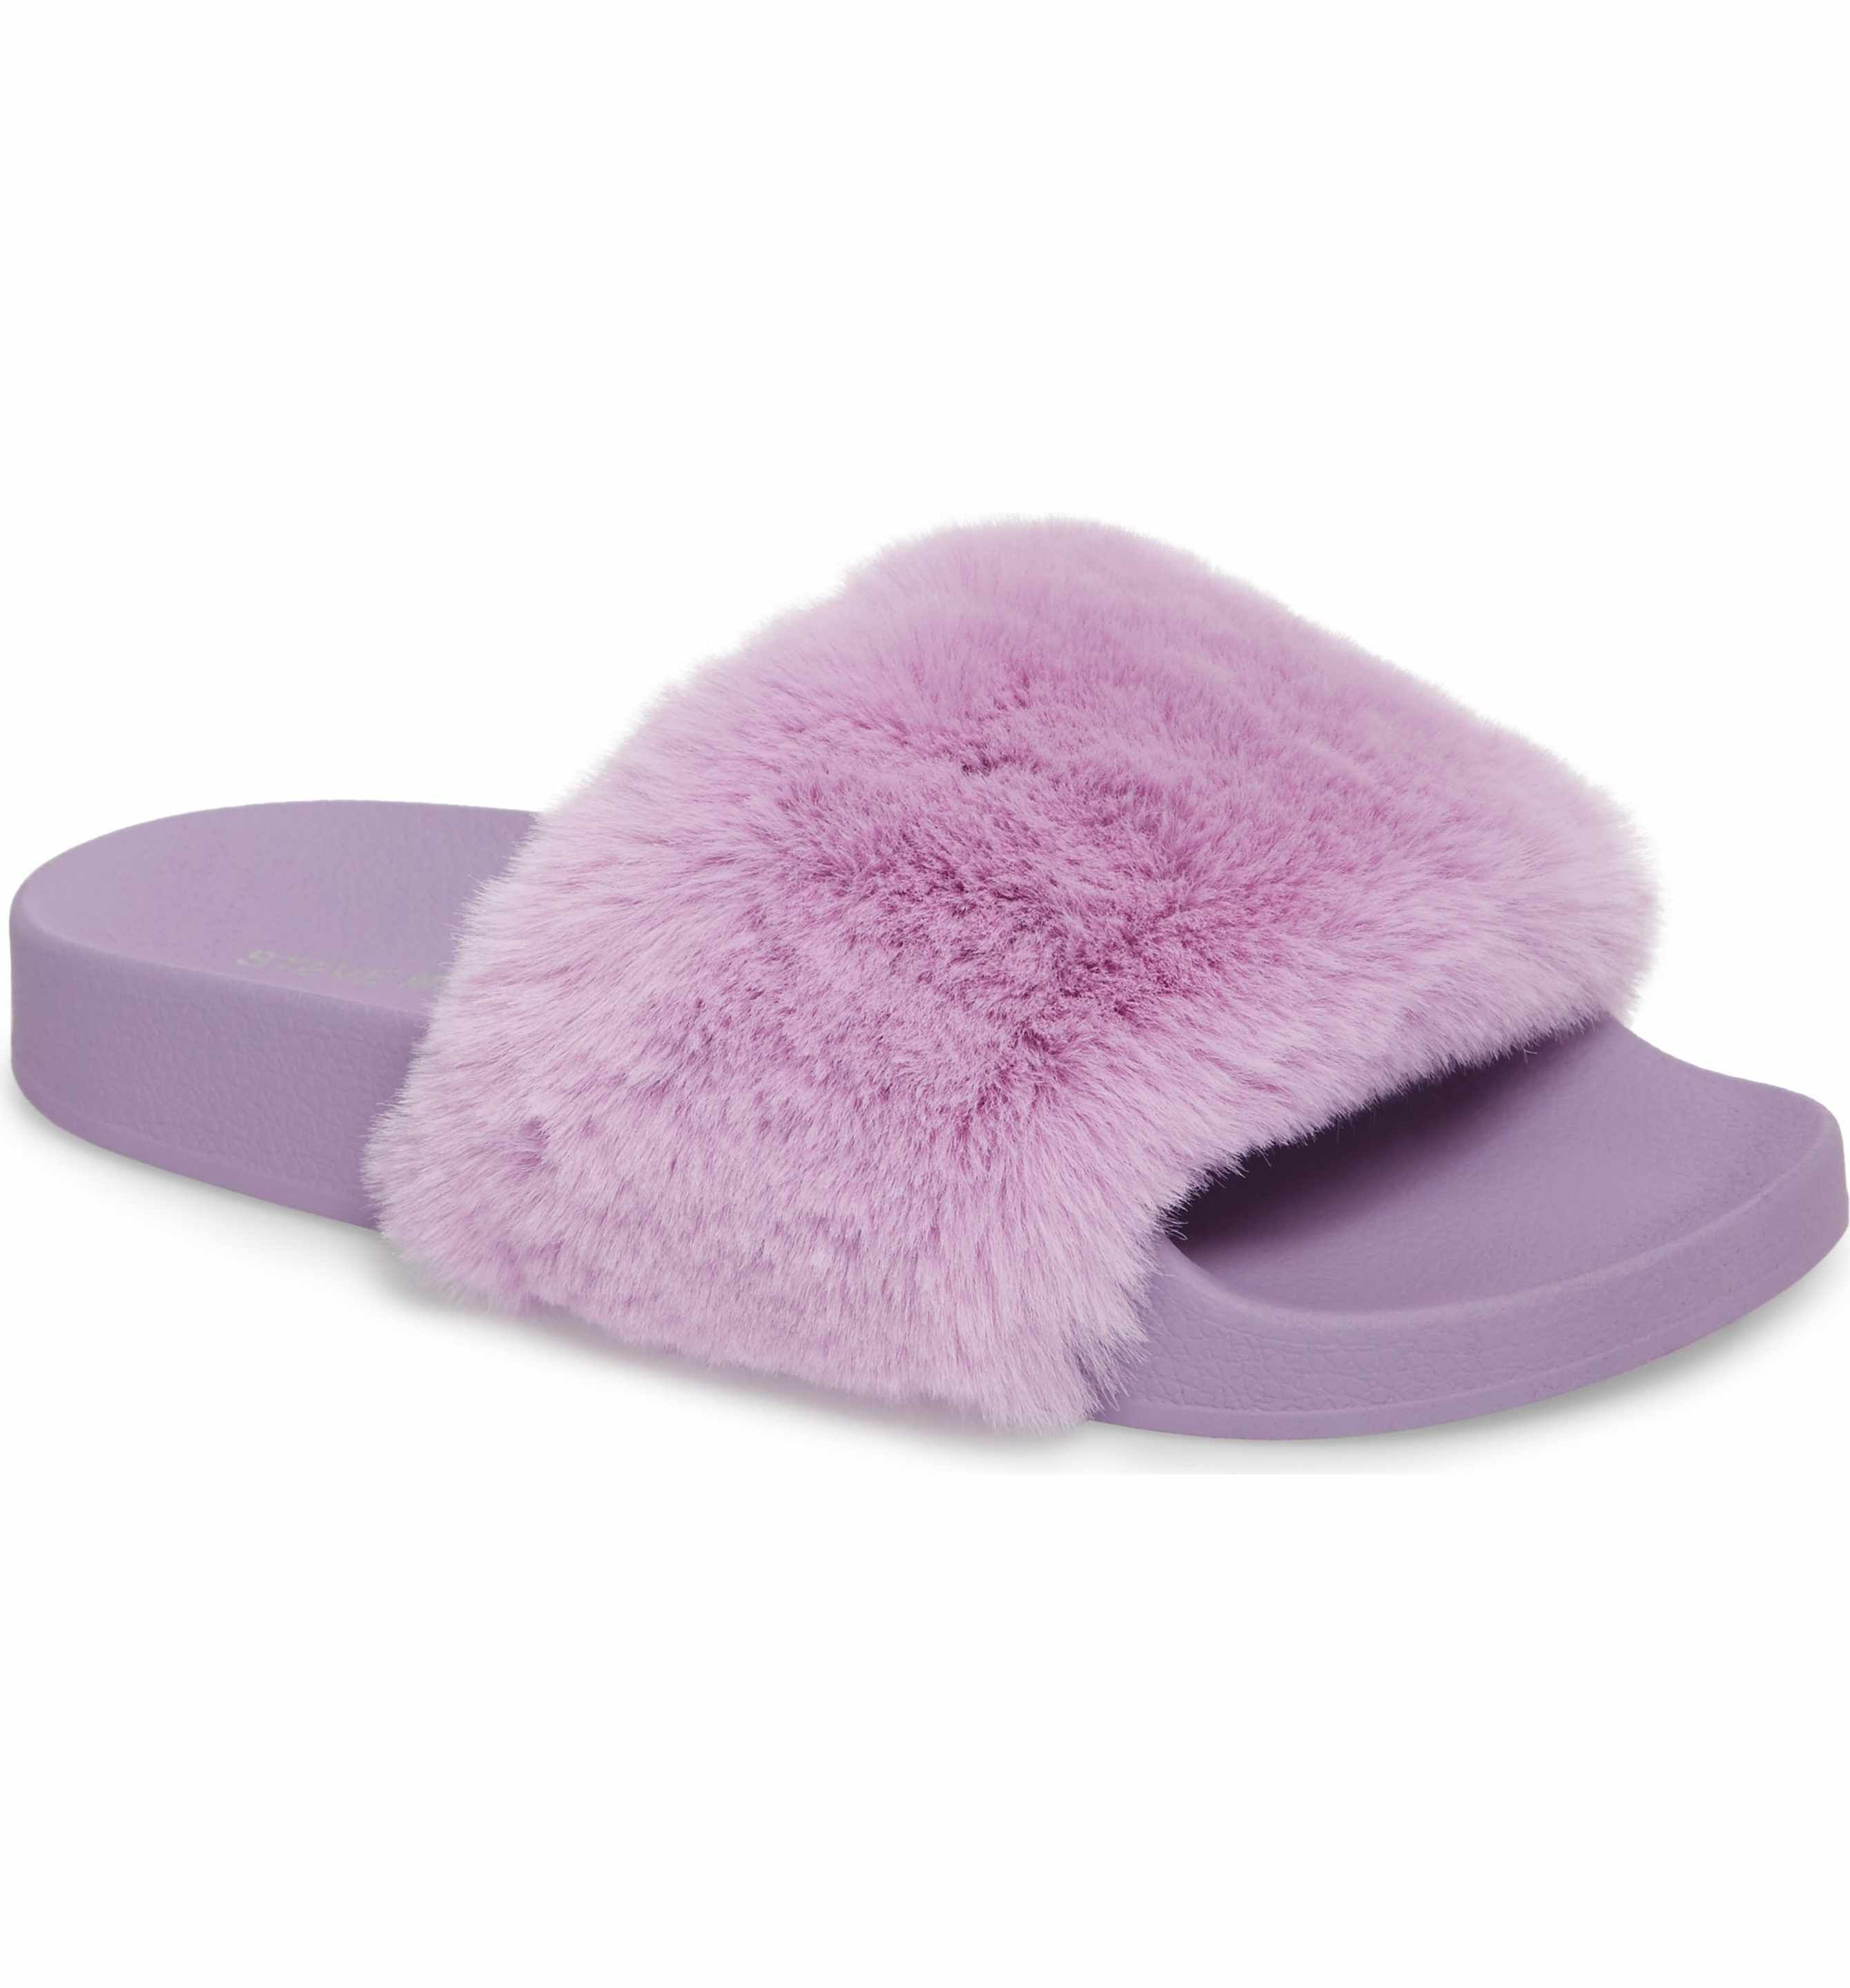 d72715b63b3 Main Image - Steve Madden Softey Slide (Women) | shoes | Fuzzy ...